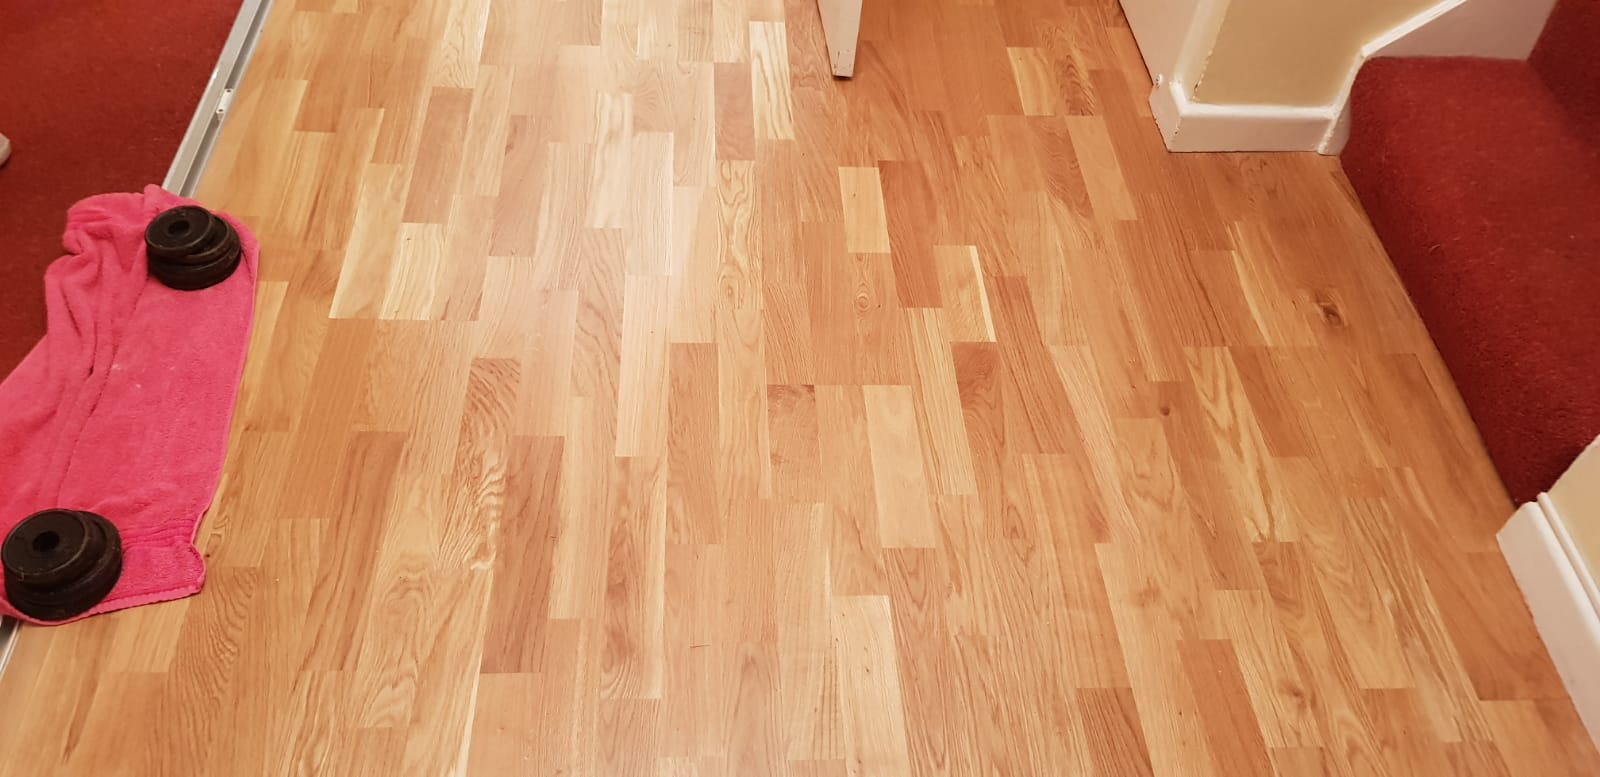 3-Strip Wood Flooring In Wandsworth 1